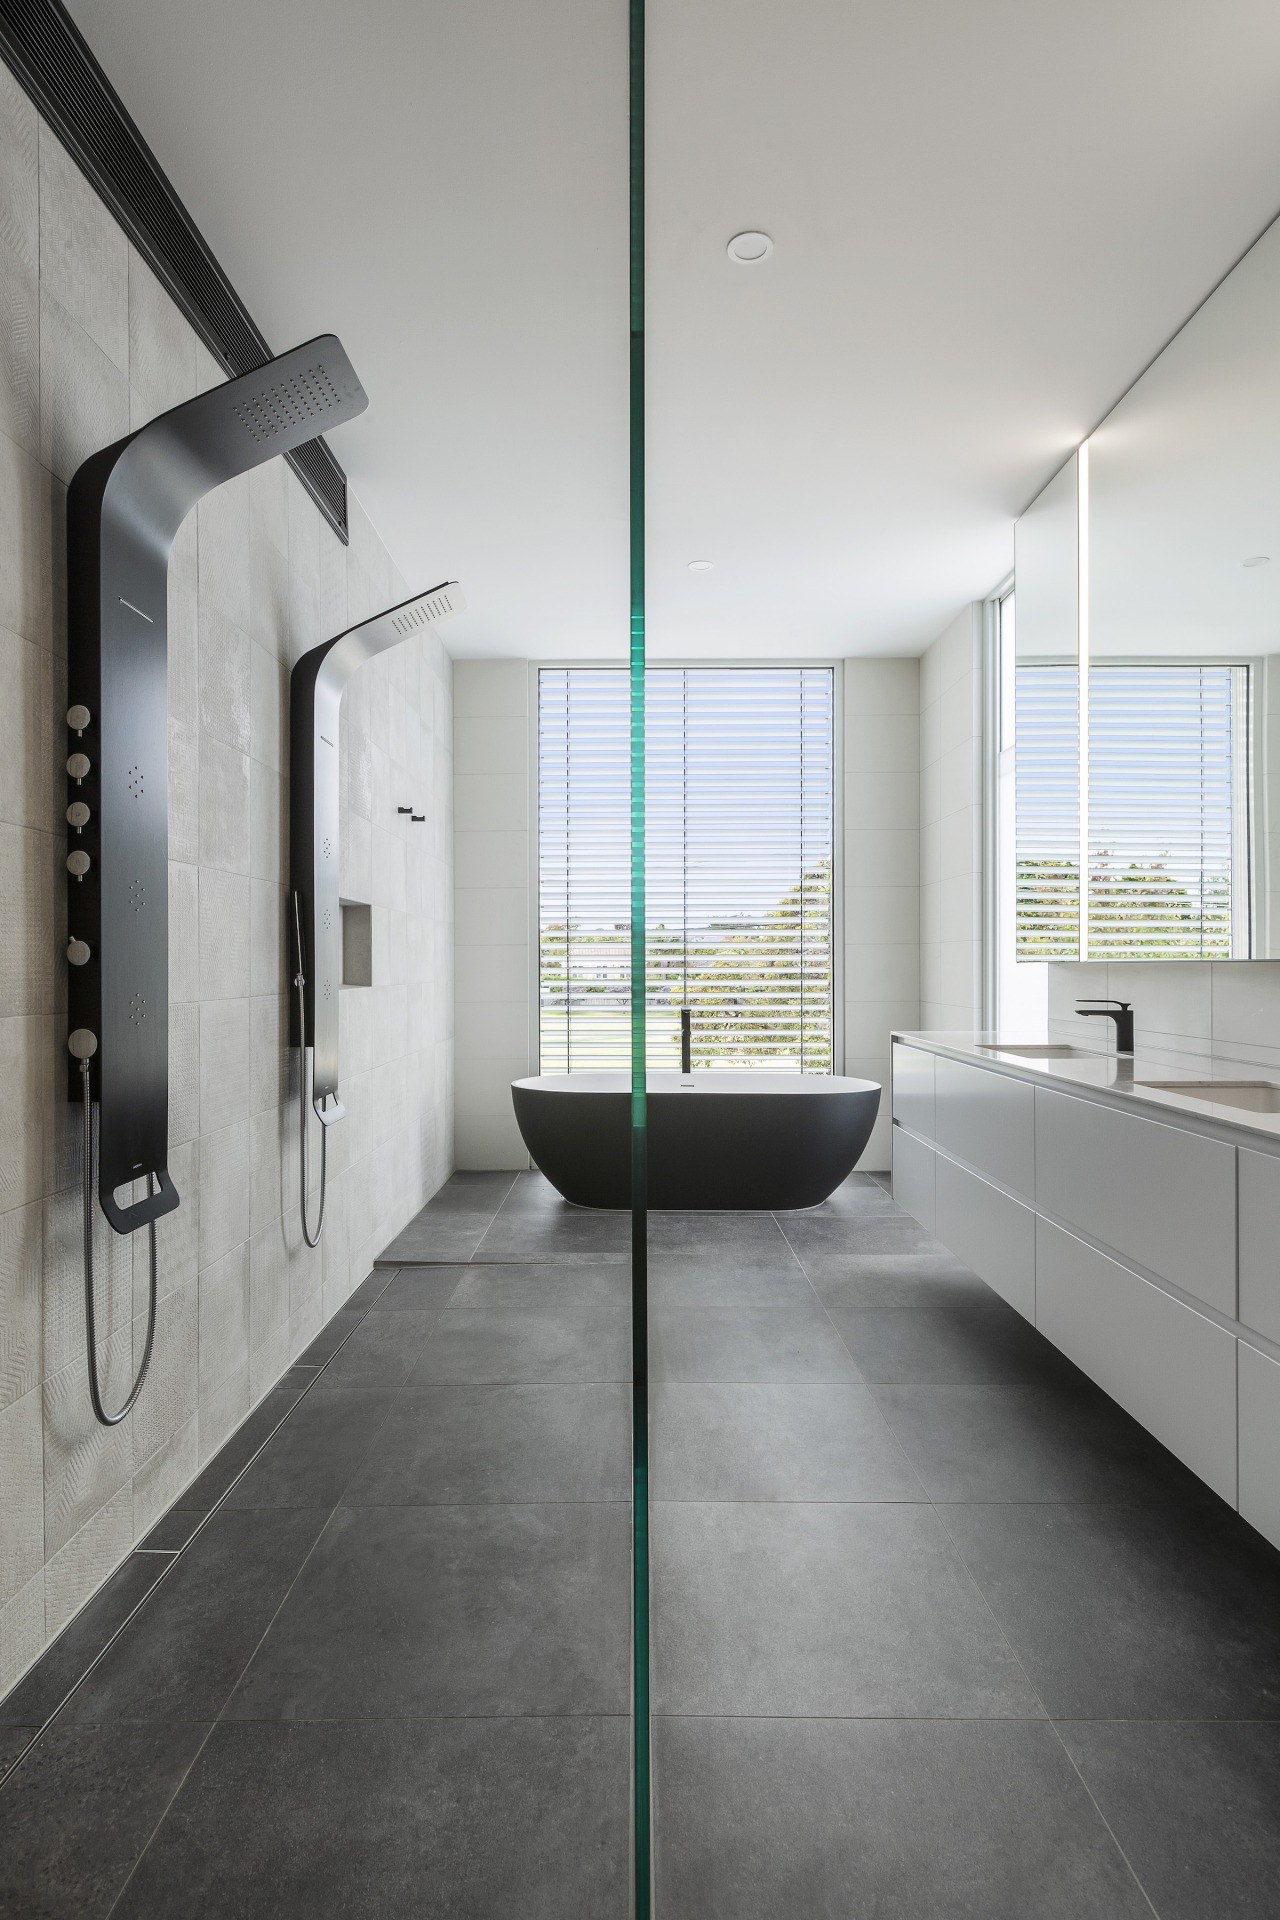 The bath provided a wonderful feature to the